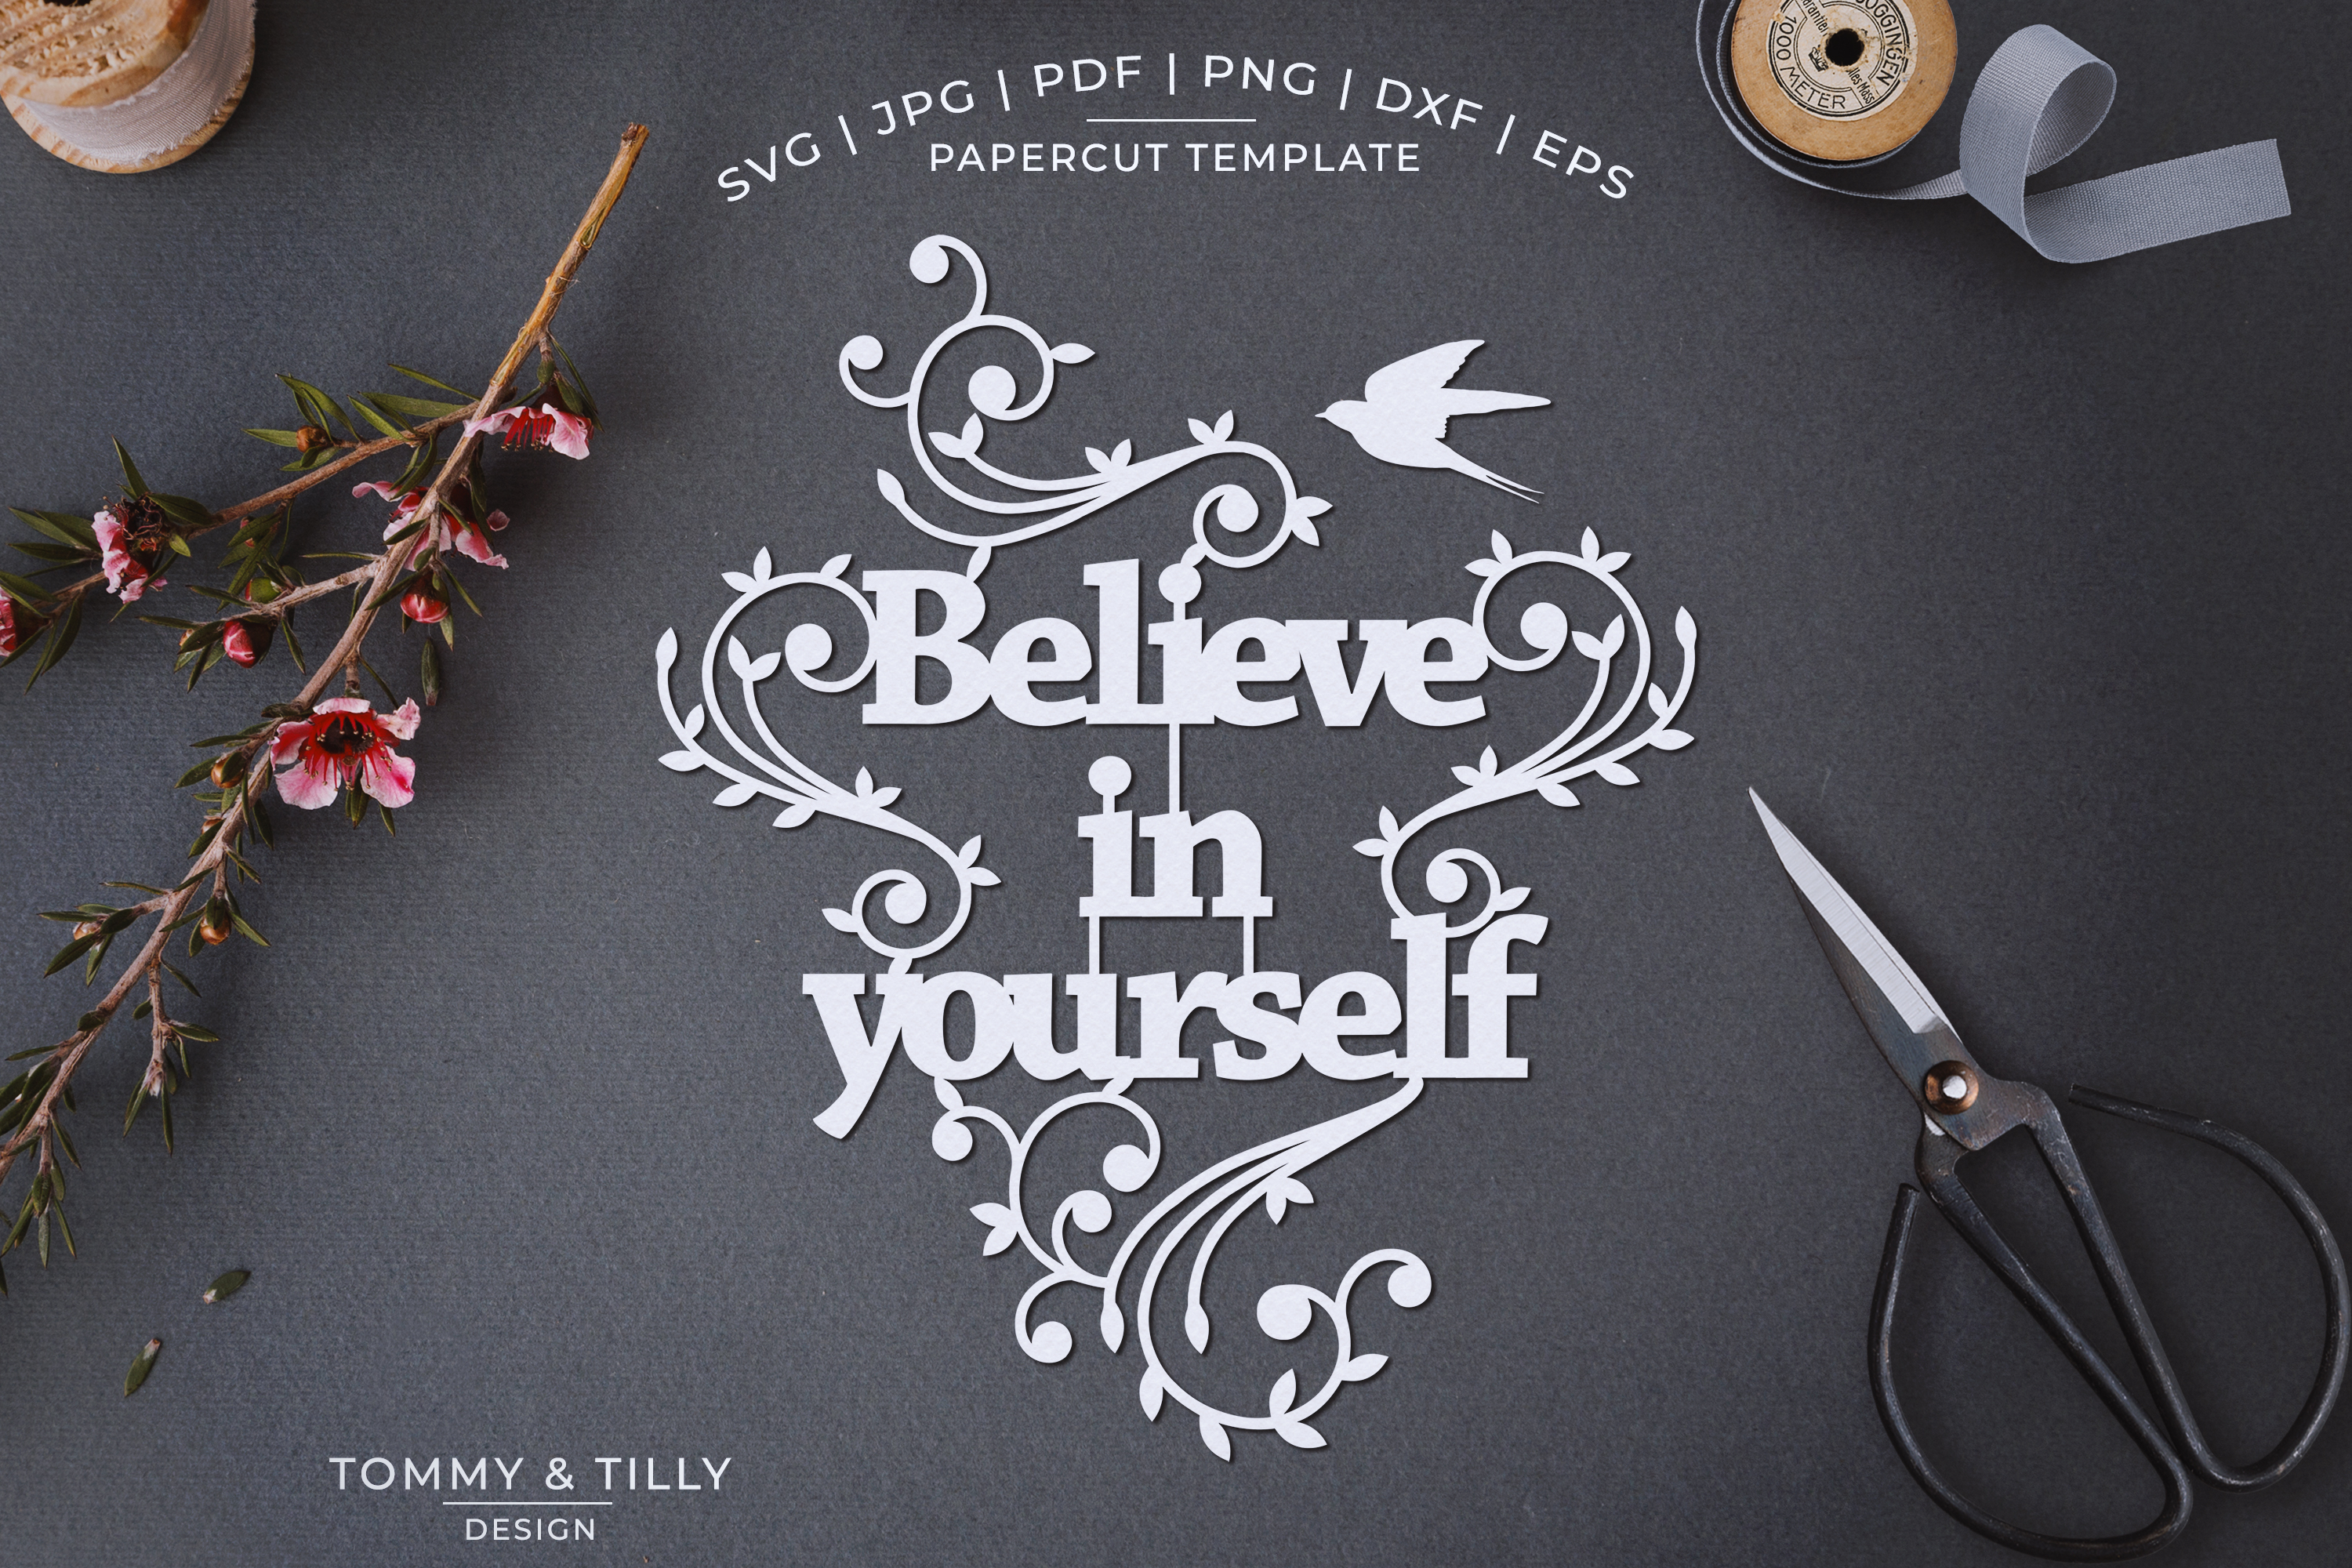 Believe in yourself - Papercut SVG EPS DXF PNG PDF example image 1